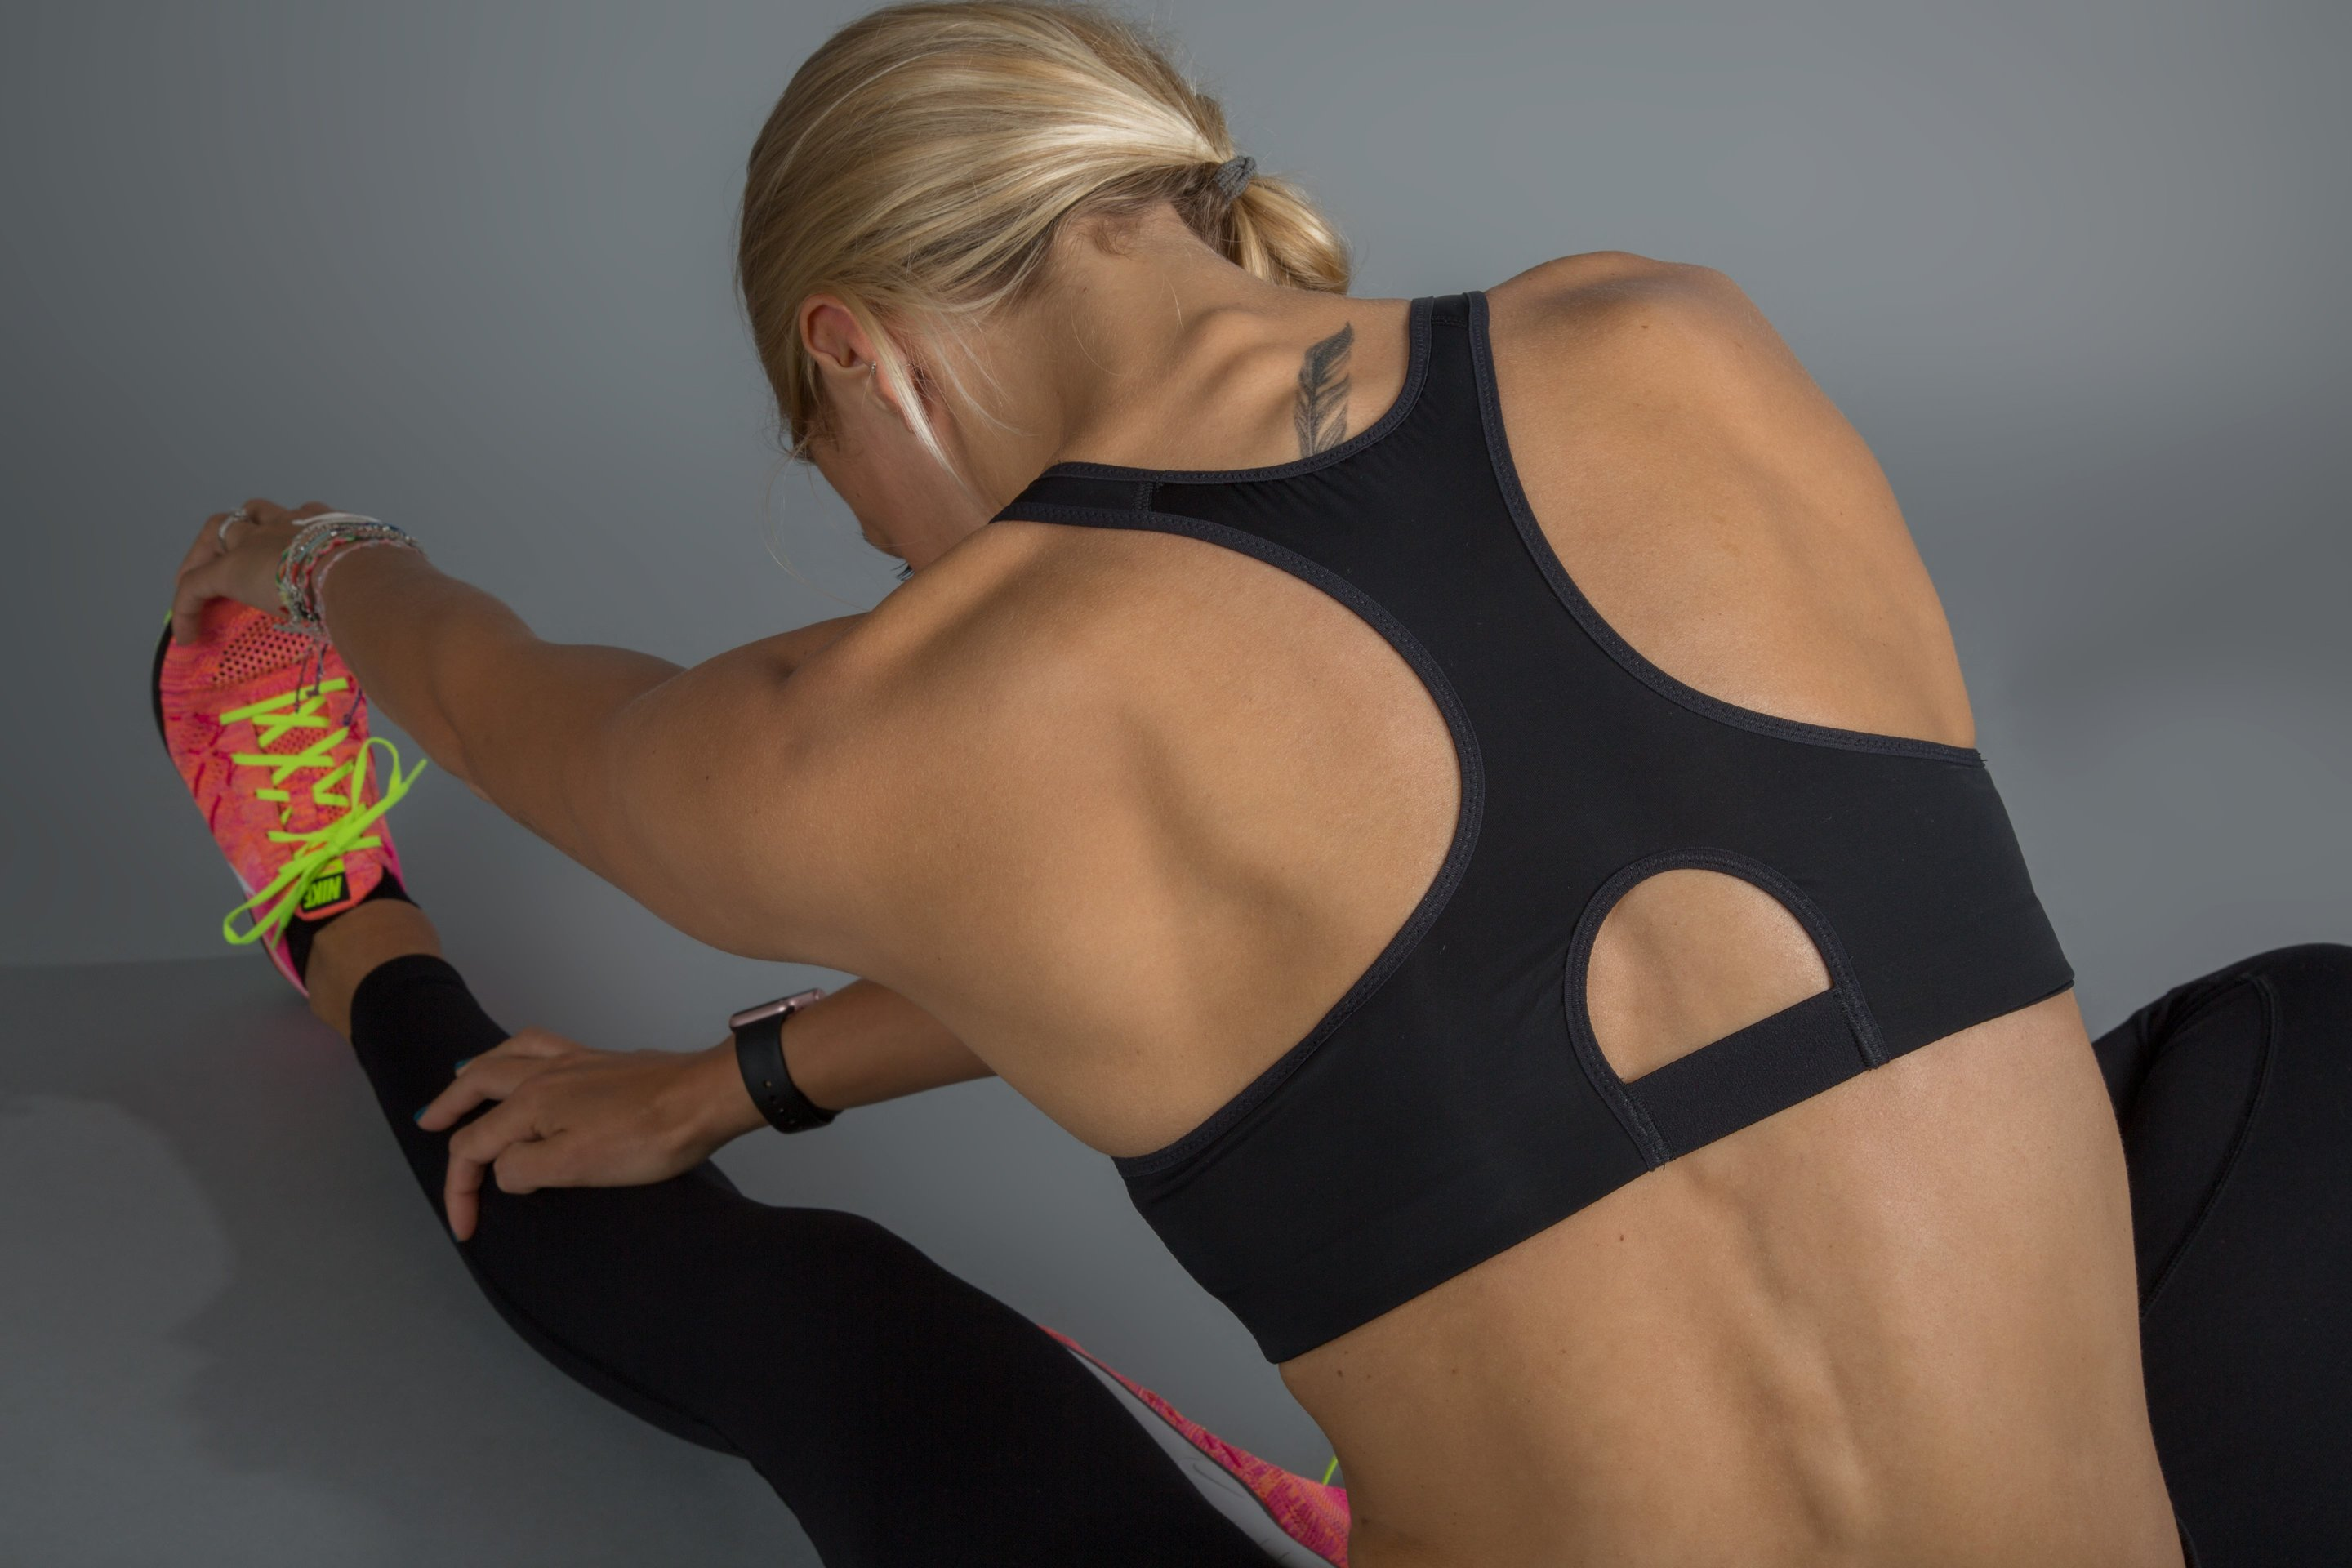 Why Becs Gentry wears the Nike Pro Rival Bra